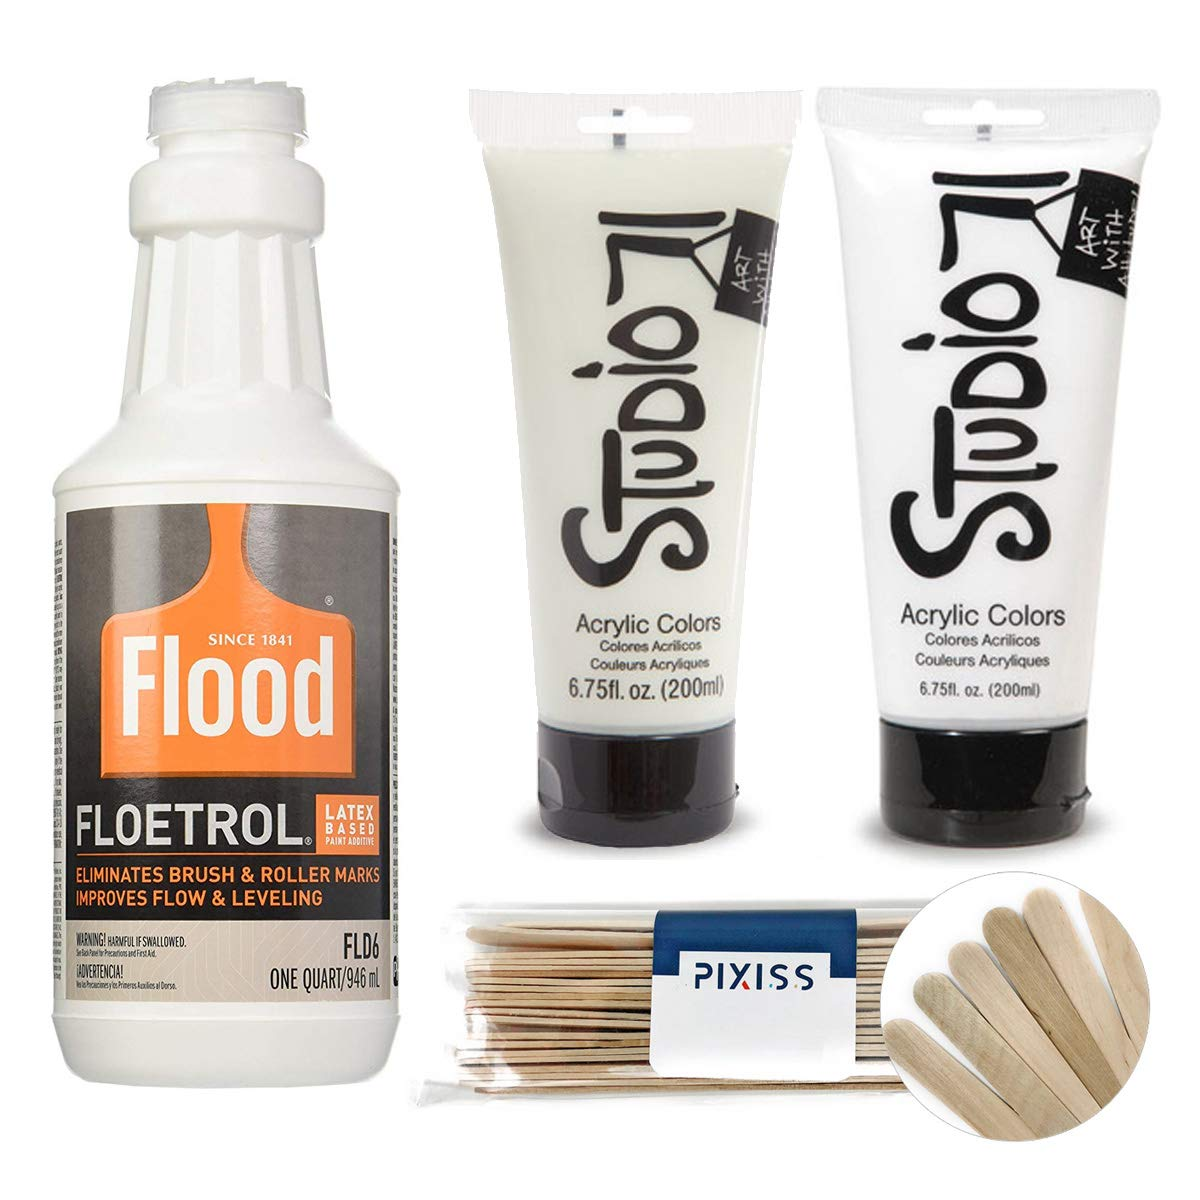 1 Quart Flood Floetrol Additive, 6-Ounce Studio 71 Glow in The Dark Acrylic Paint, 6-Ounce Studio 71 White Acrylic Paint, 20x 6-inch Pixiss Wood Mixing Sticks